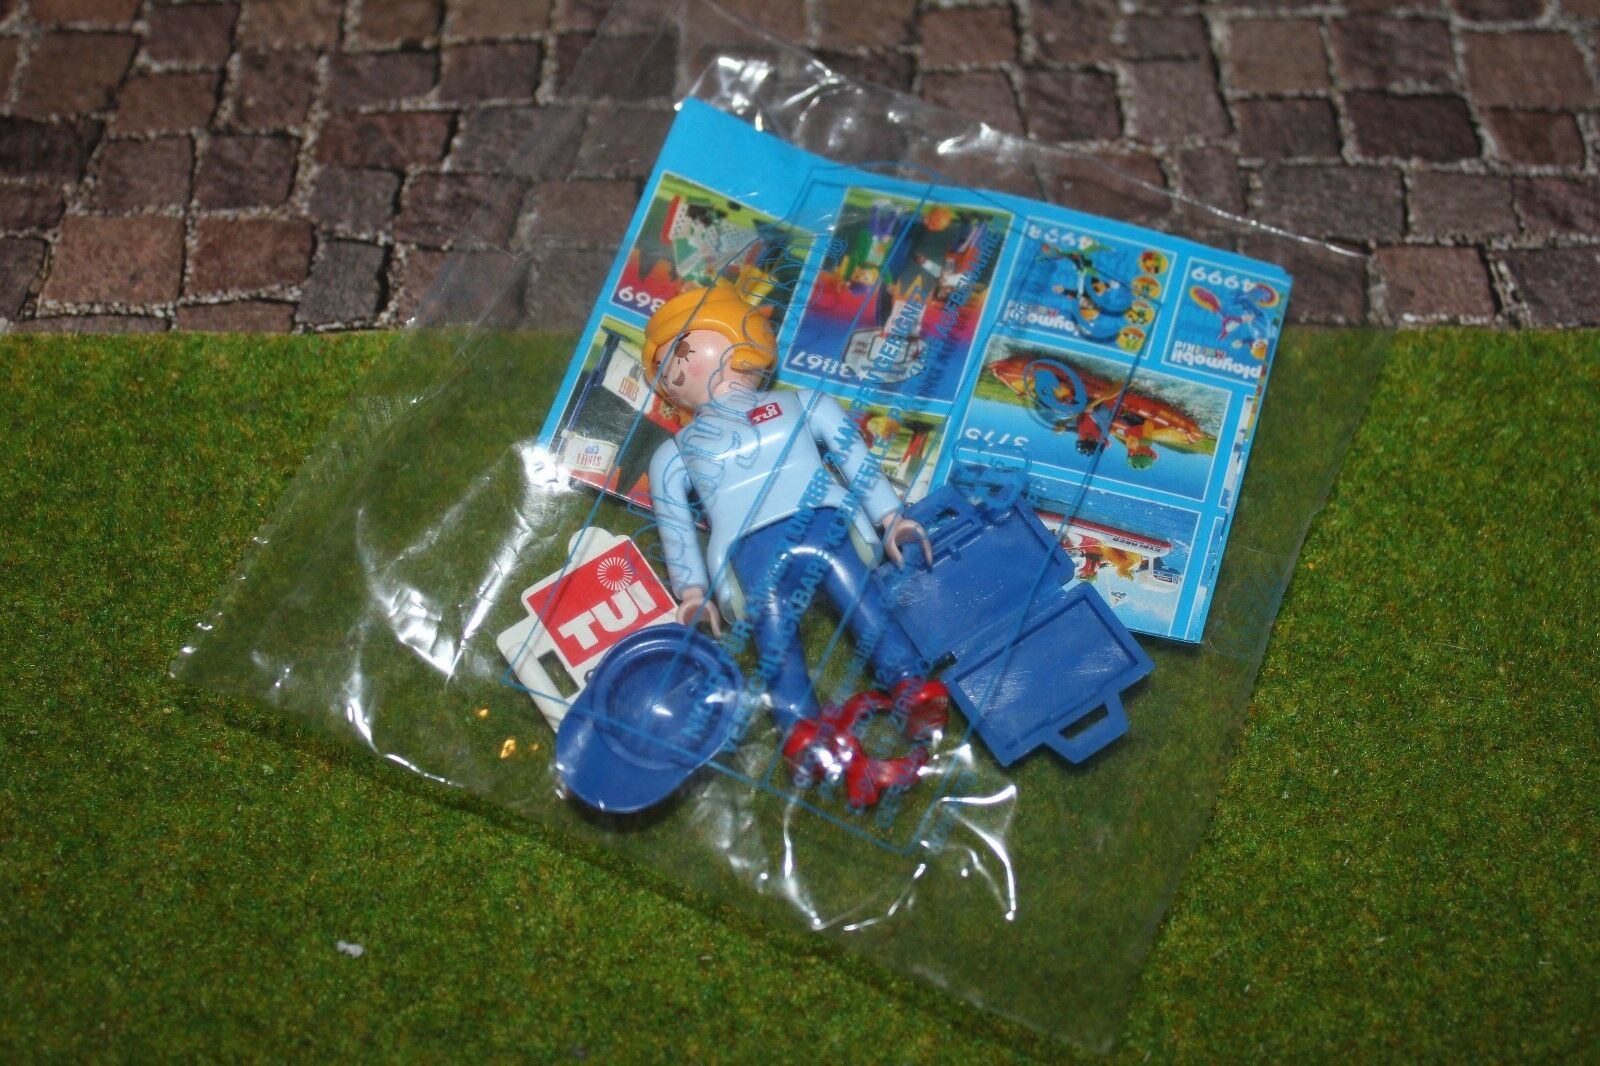 Playmobil Tui Checkers New Promotional Figure